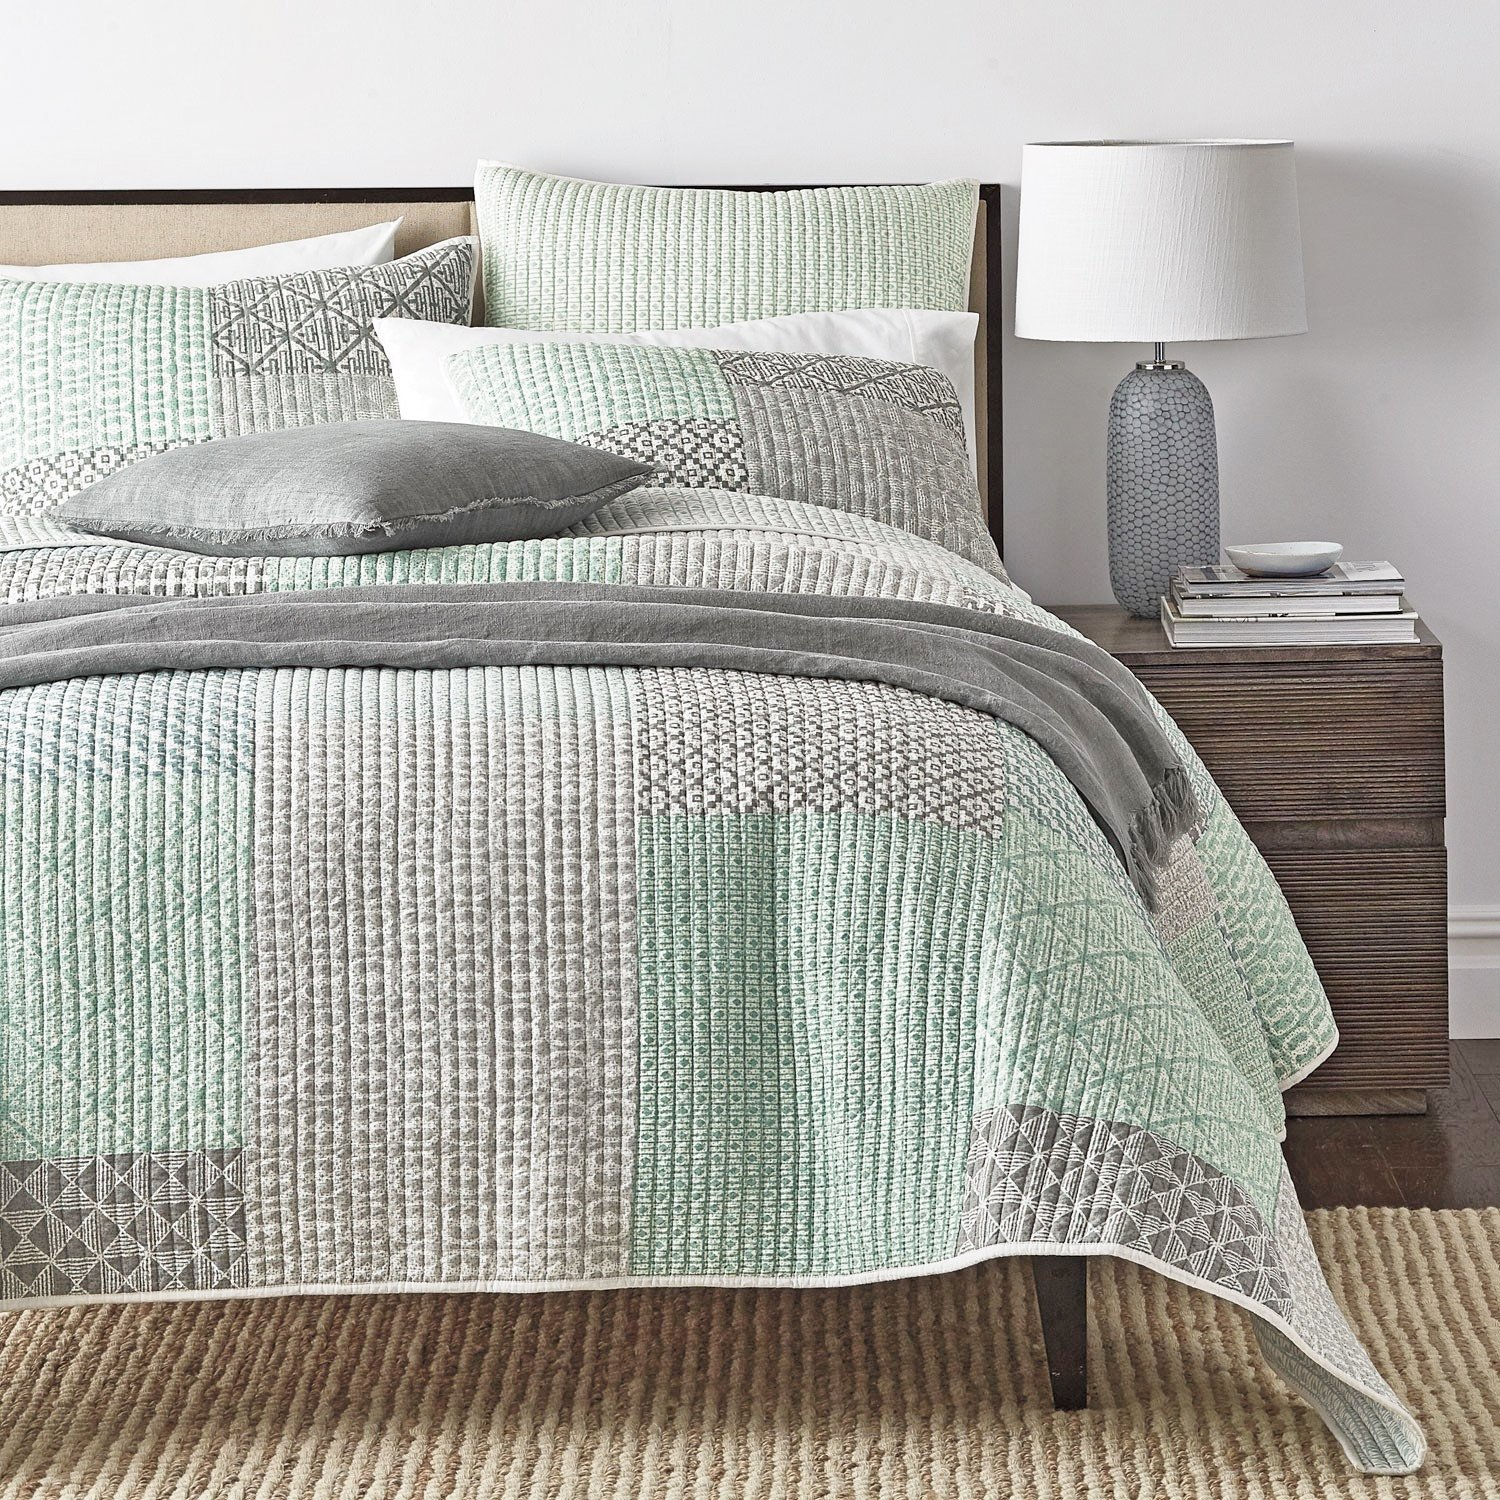 Amazon.com: DaDa Bedding Contemporary Bedding Set - Mint Green Grey  Geometric Patchwork - Quilted Coverlet - Queen - 3-Pieces: Home & Kitchen